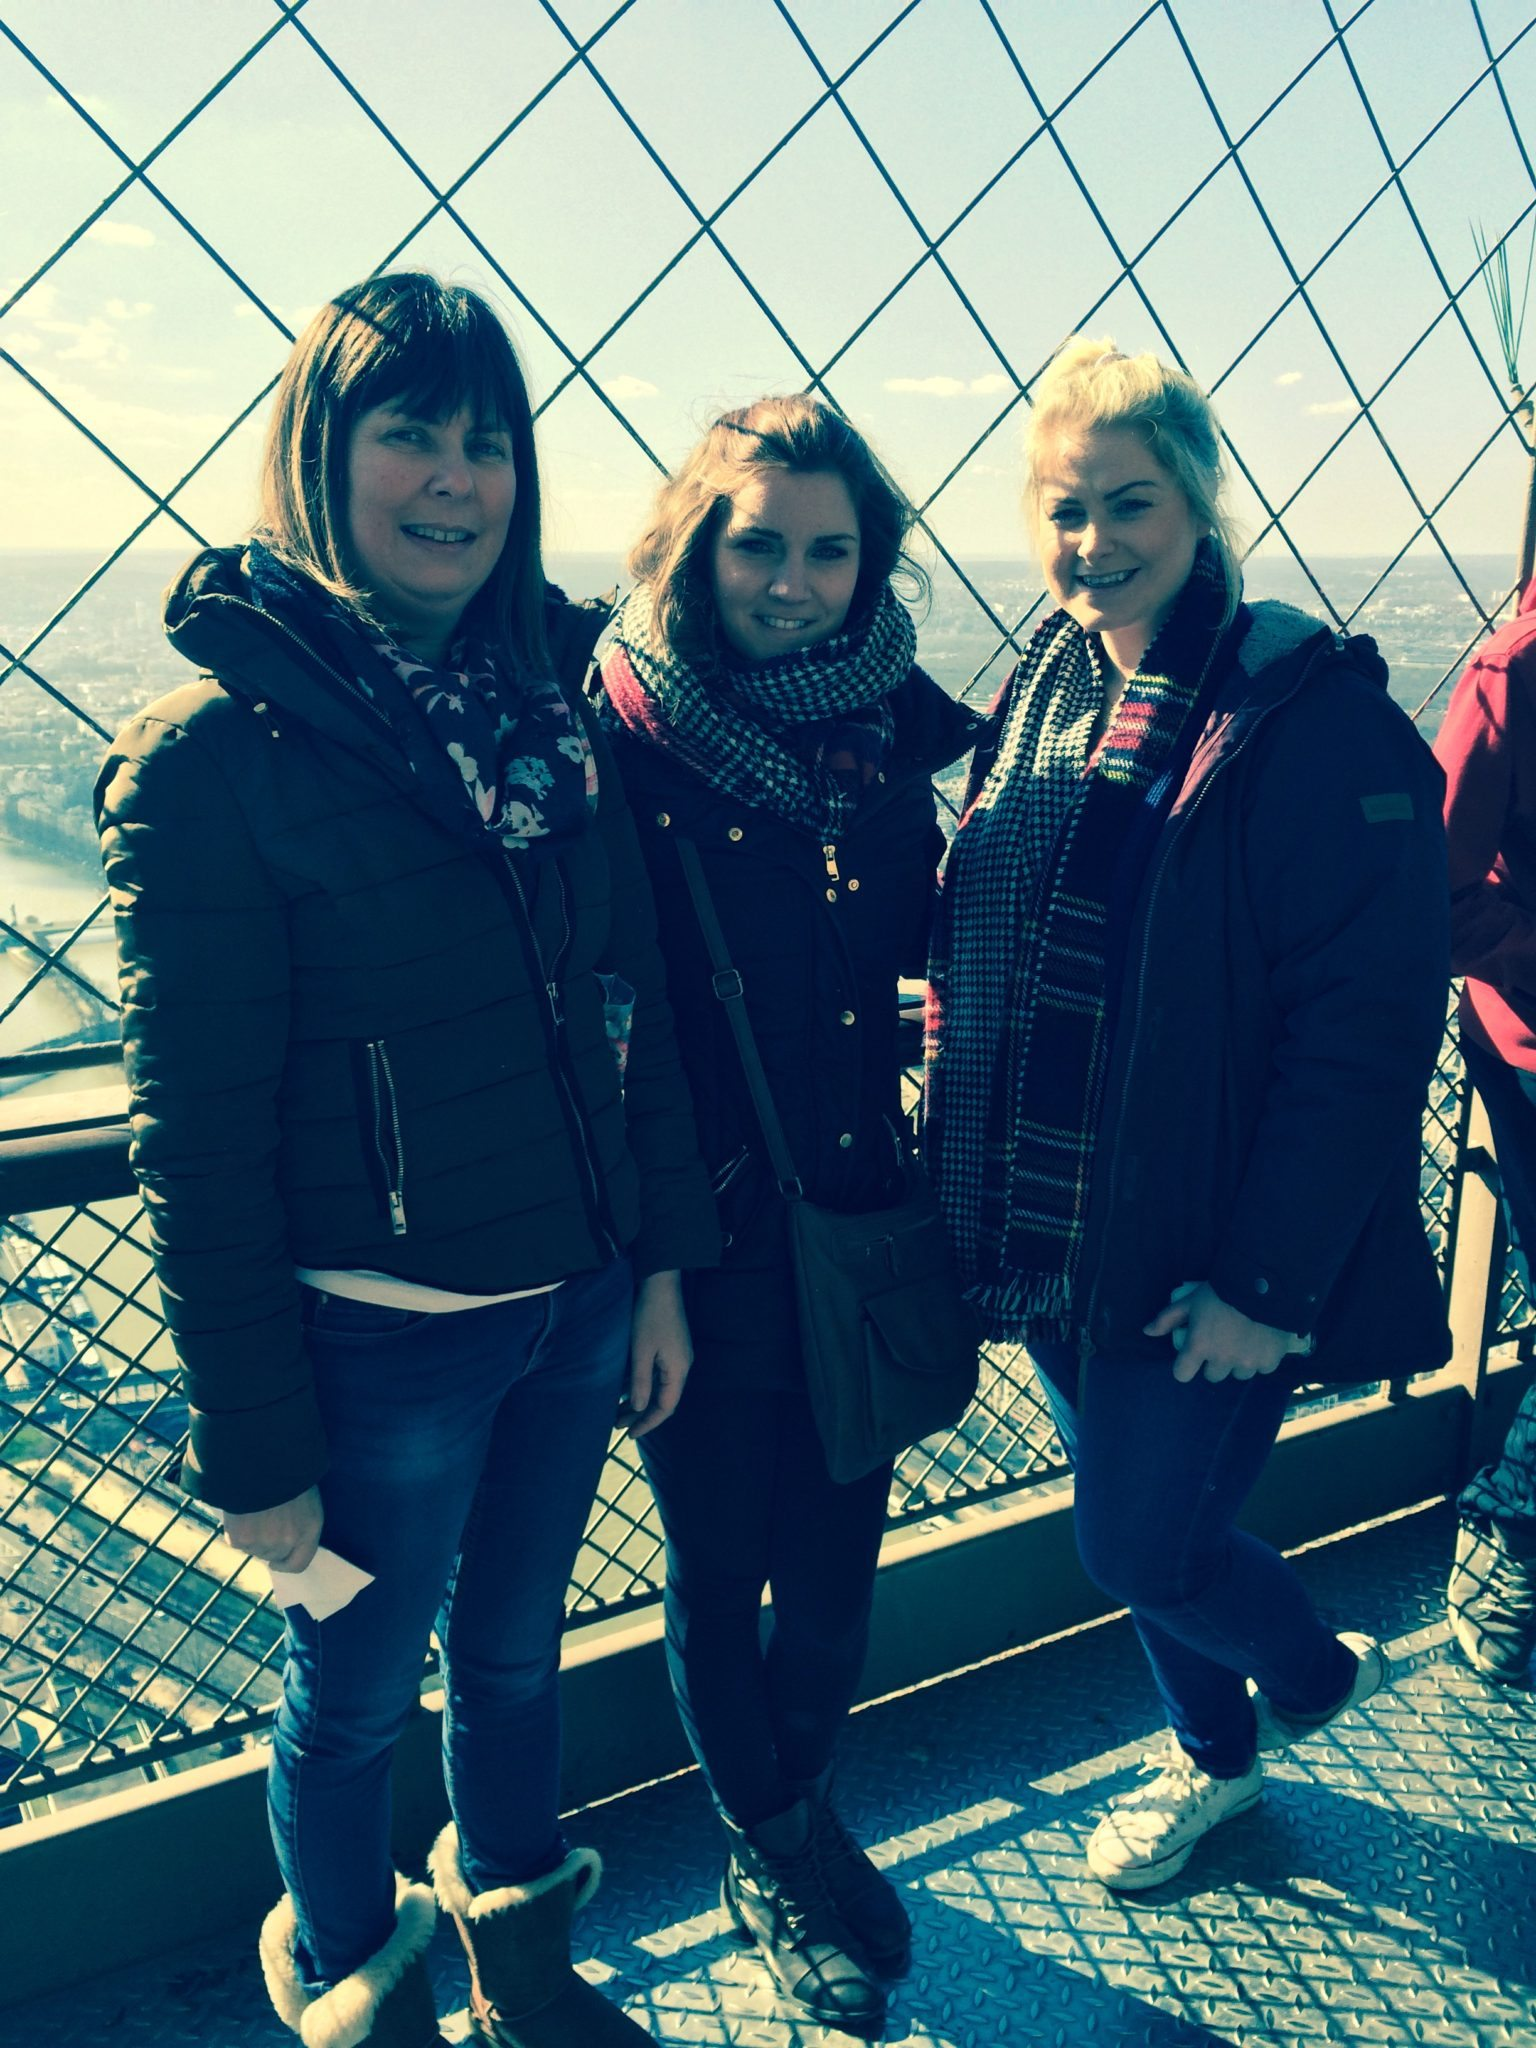 Ms Cregan, Ms Nicholas and Ms Ryan enjoy the view on the Eiffel Tower